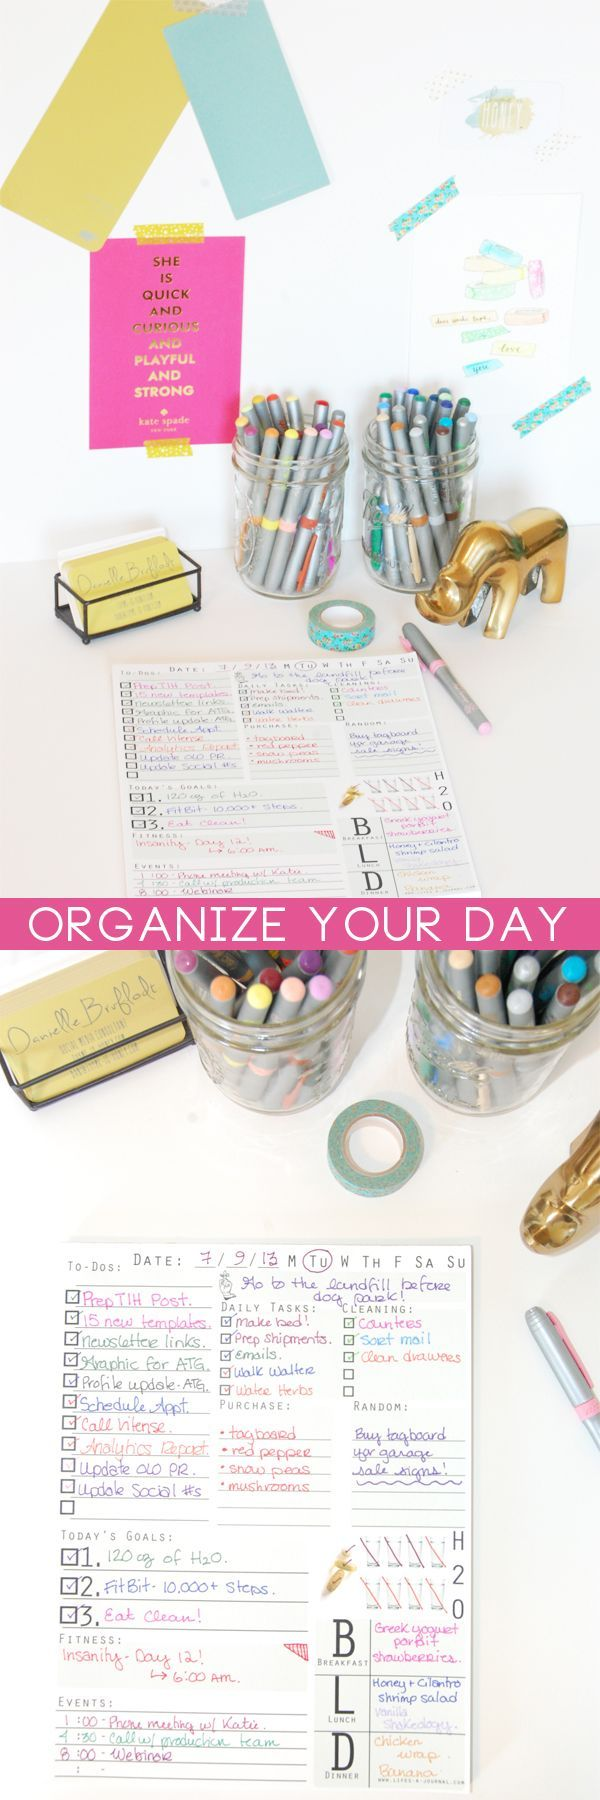 Tips for How to Organize Your Day #repin